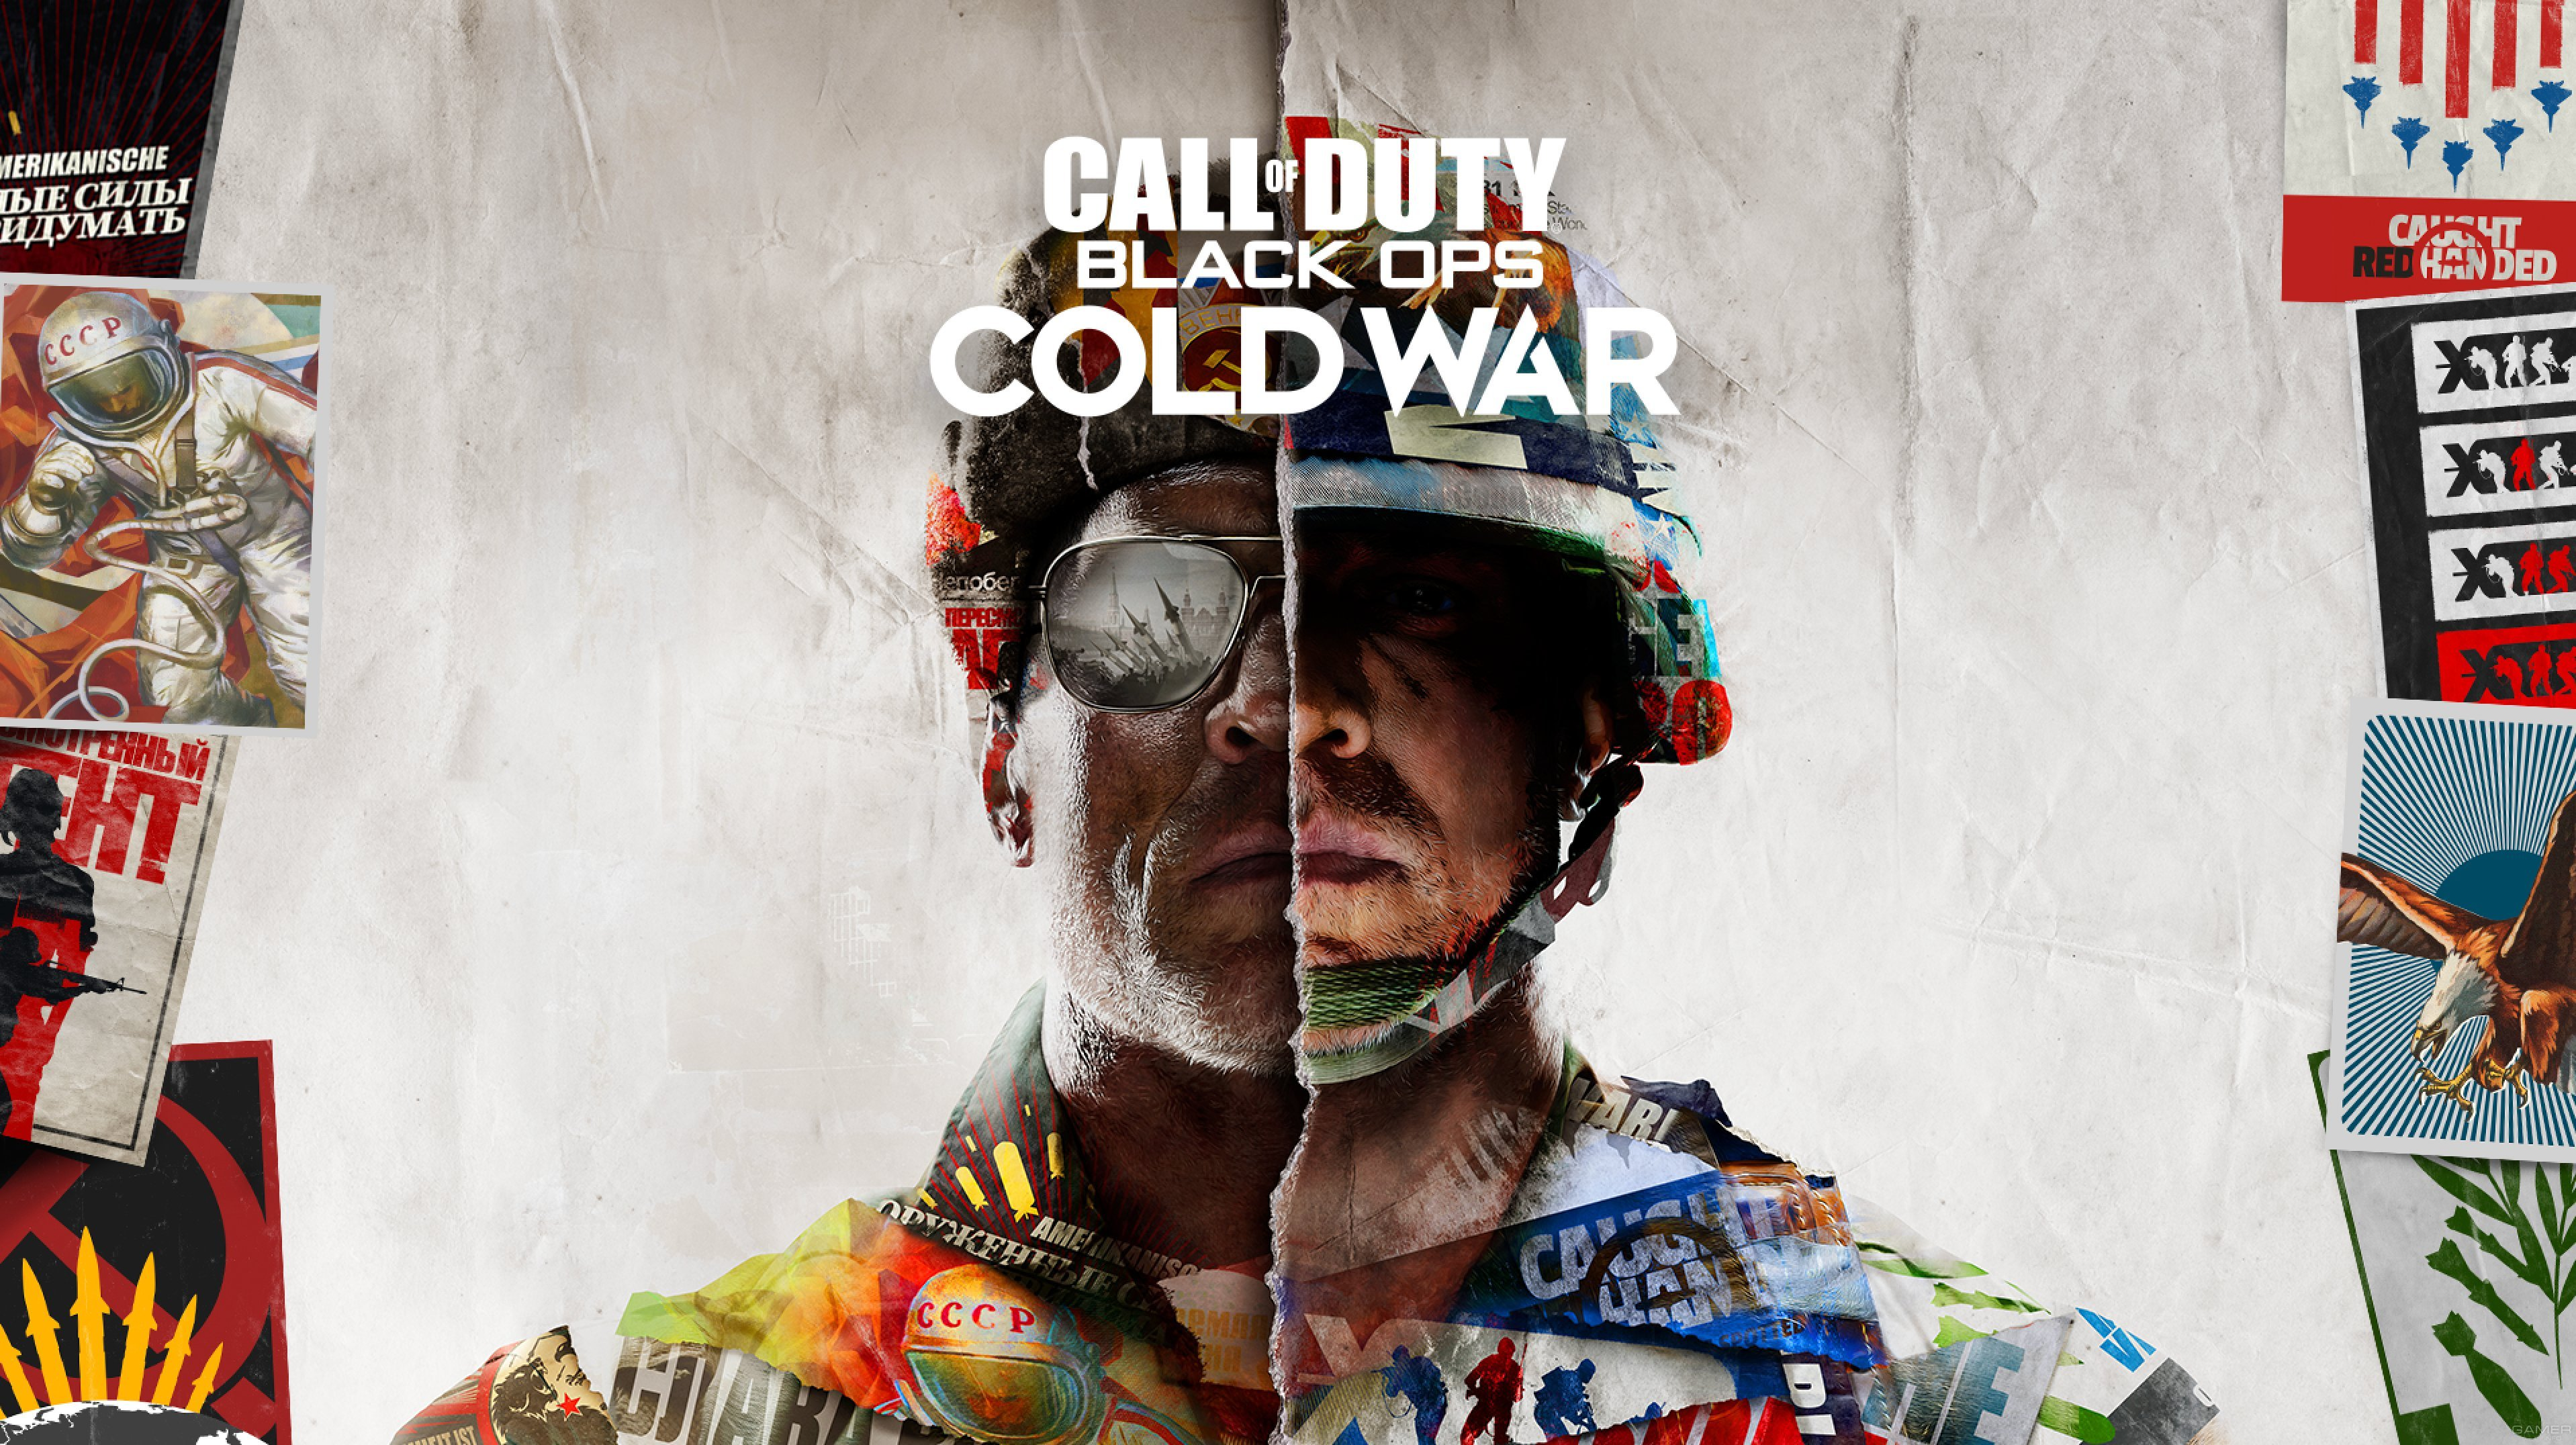 Call Of Duty Black Ops Cold War Features Female Protagonist They Them Pronoun Option J Station X